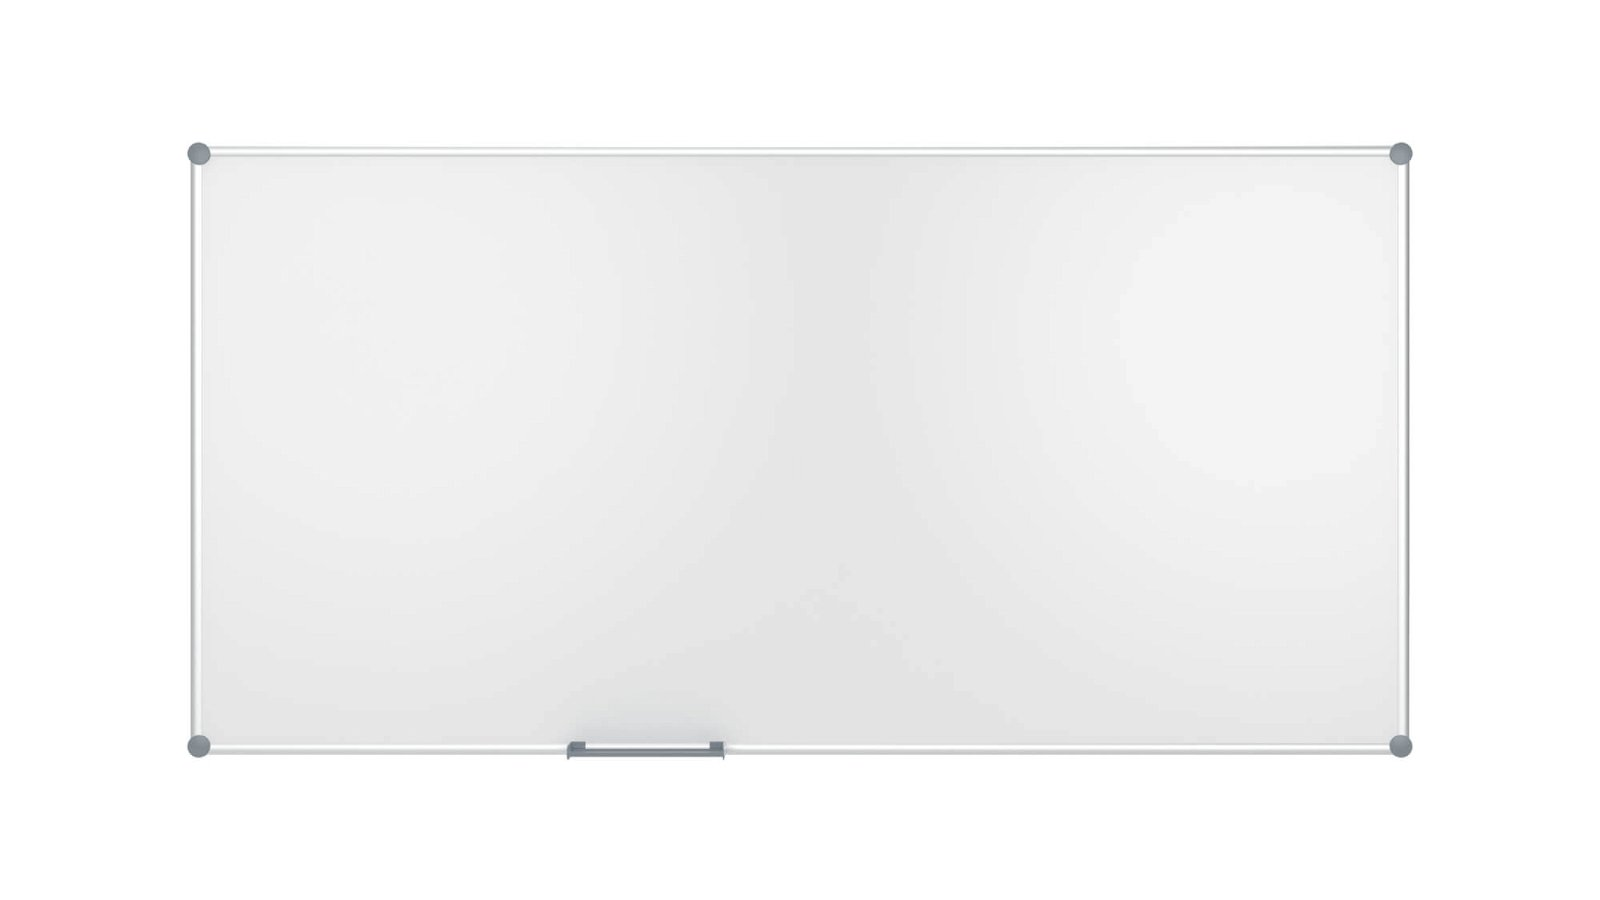 Whiteboard 2000 MAULpro, Emaille, 120x240 cm, grau